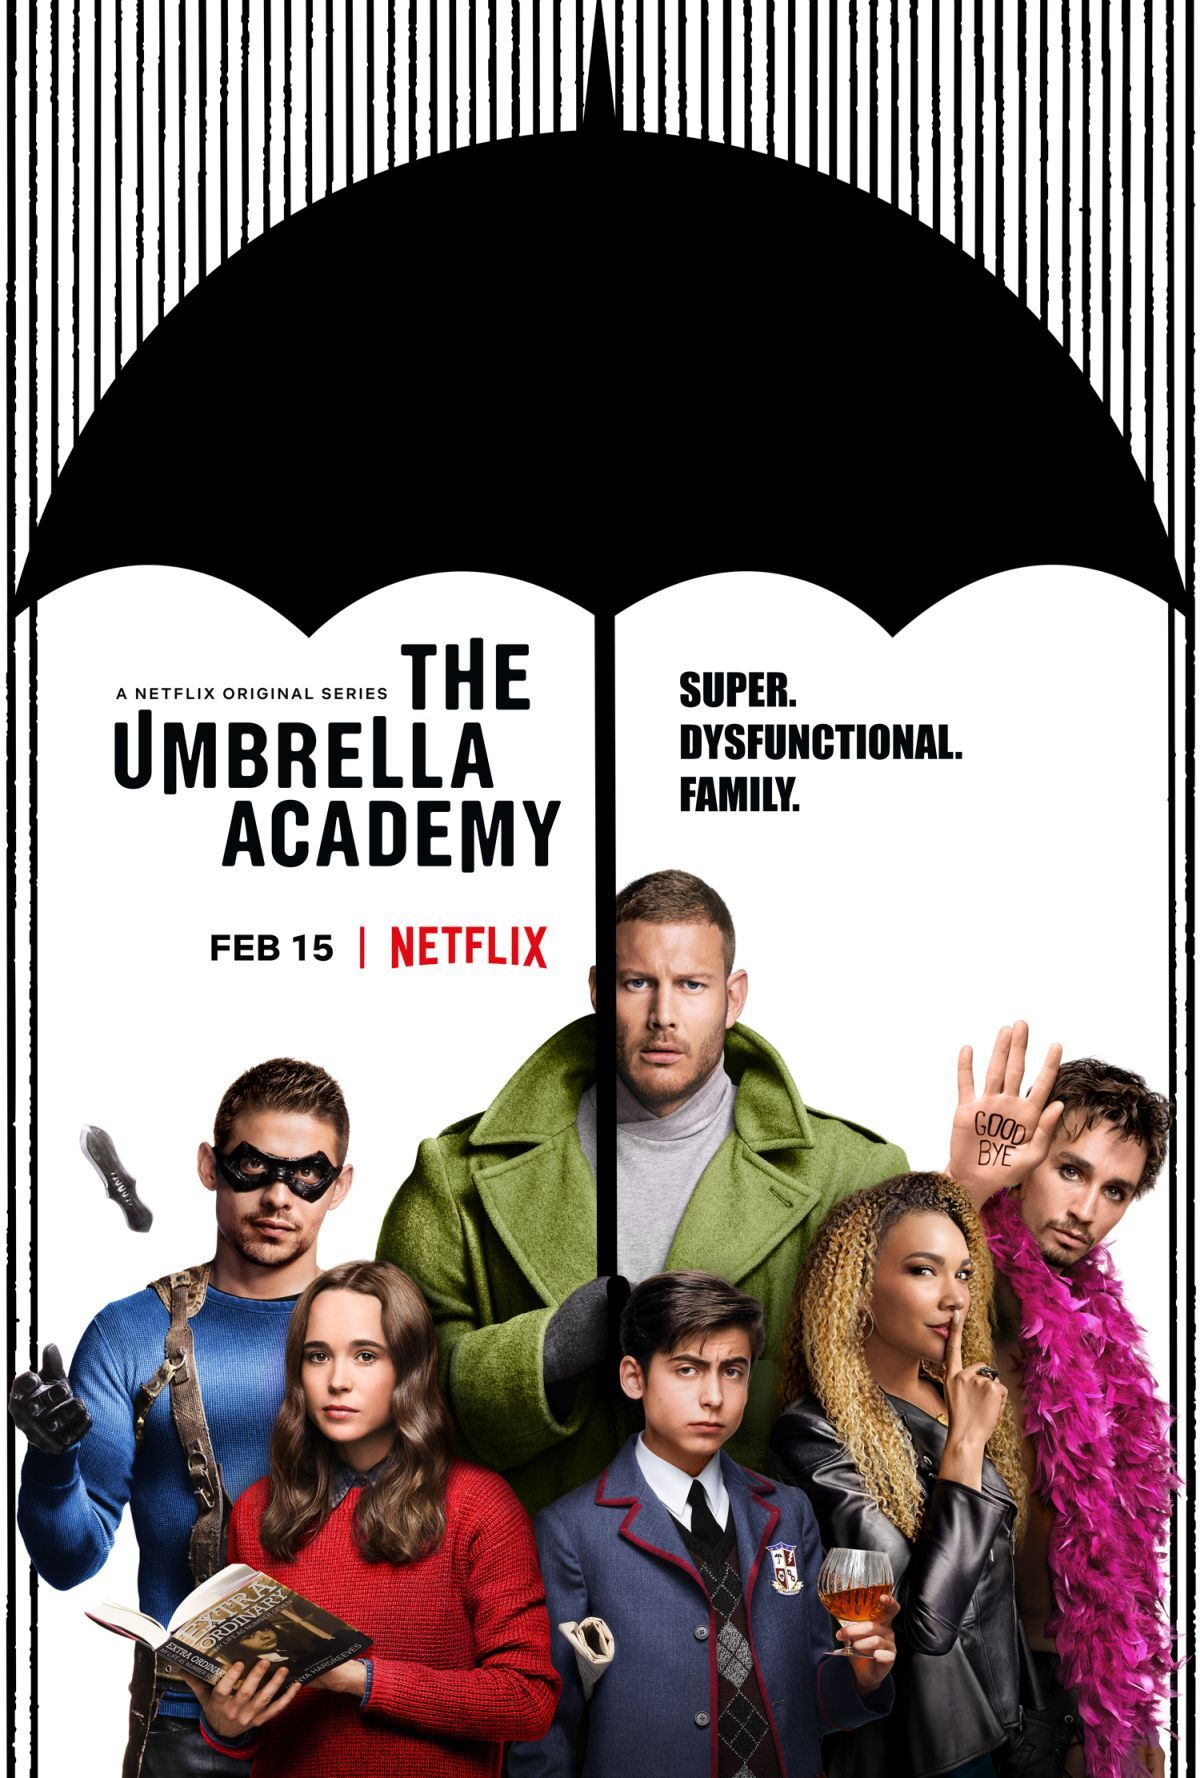 The Umbrella Academy S01 E06 Cut